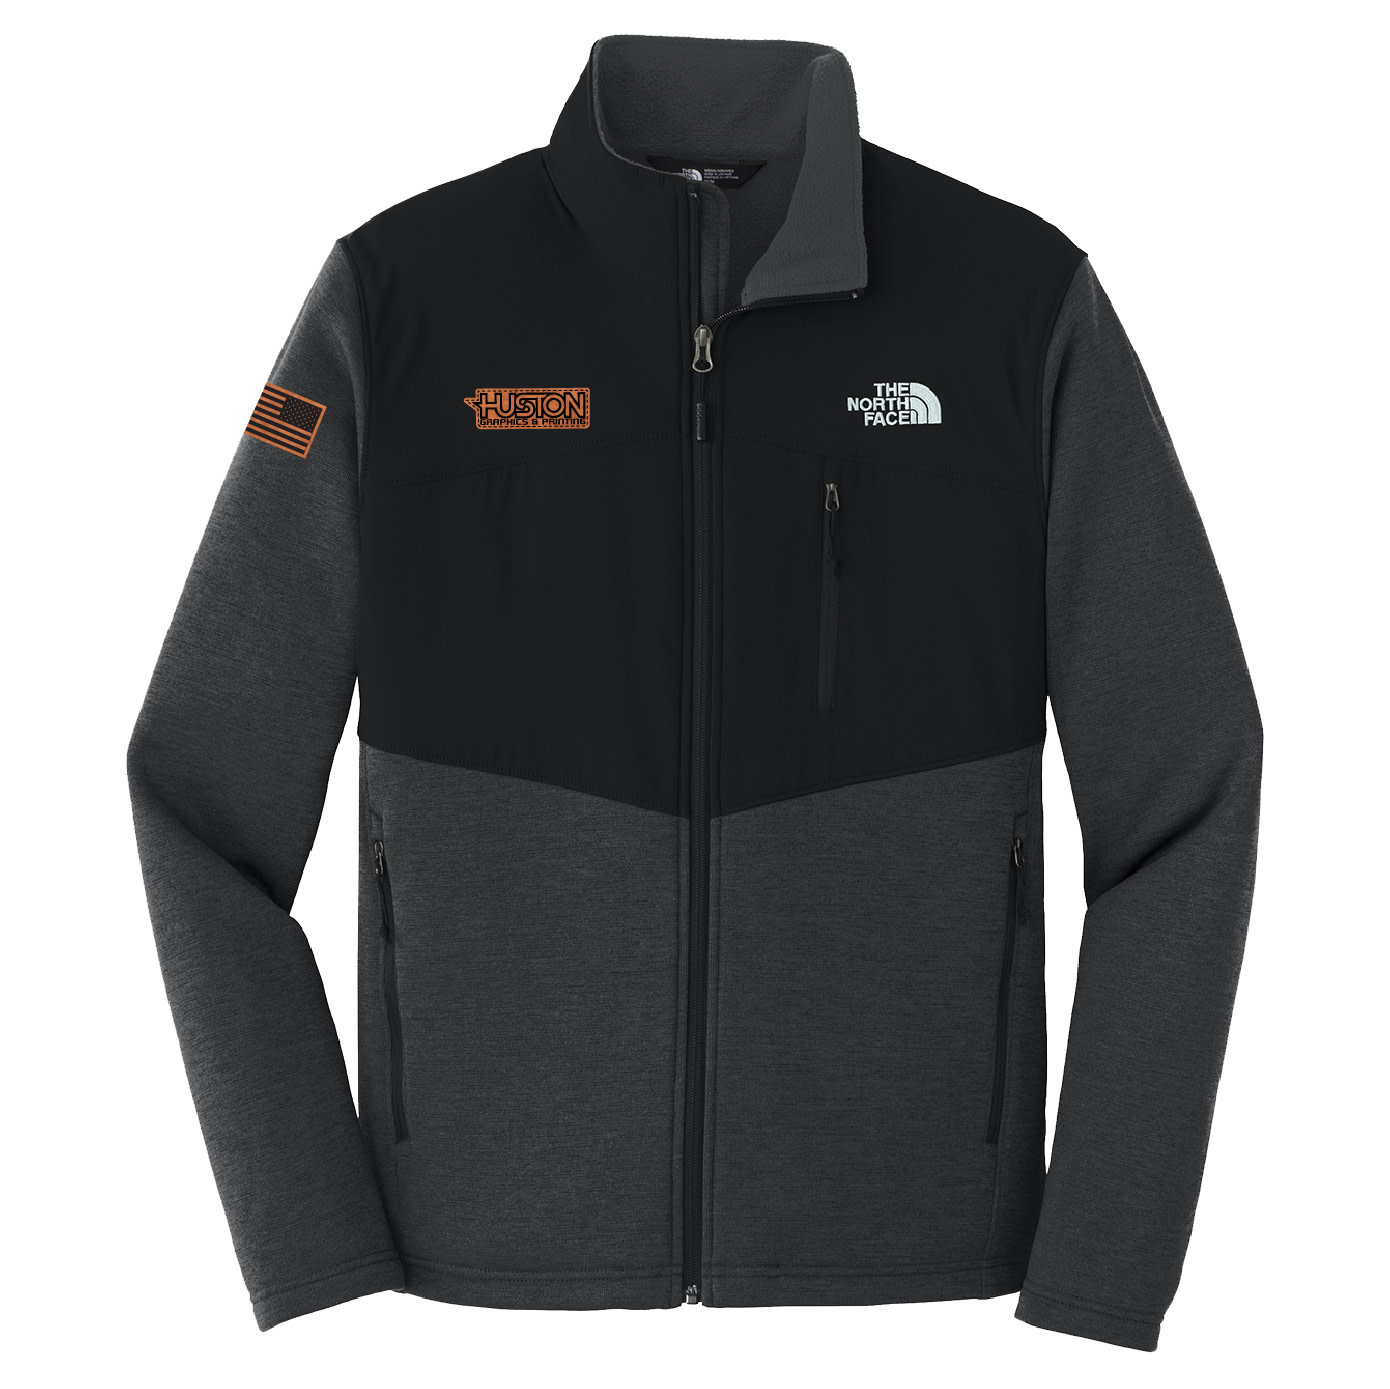 The North Face The North Face Far North Fleece Jacket (Black/Heather)